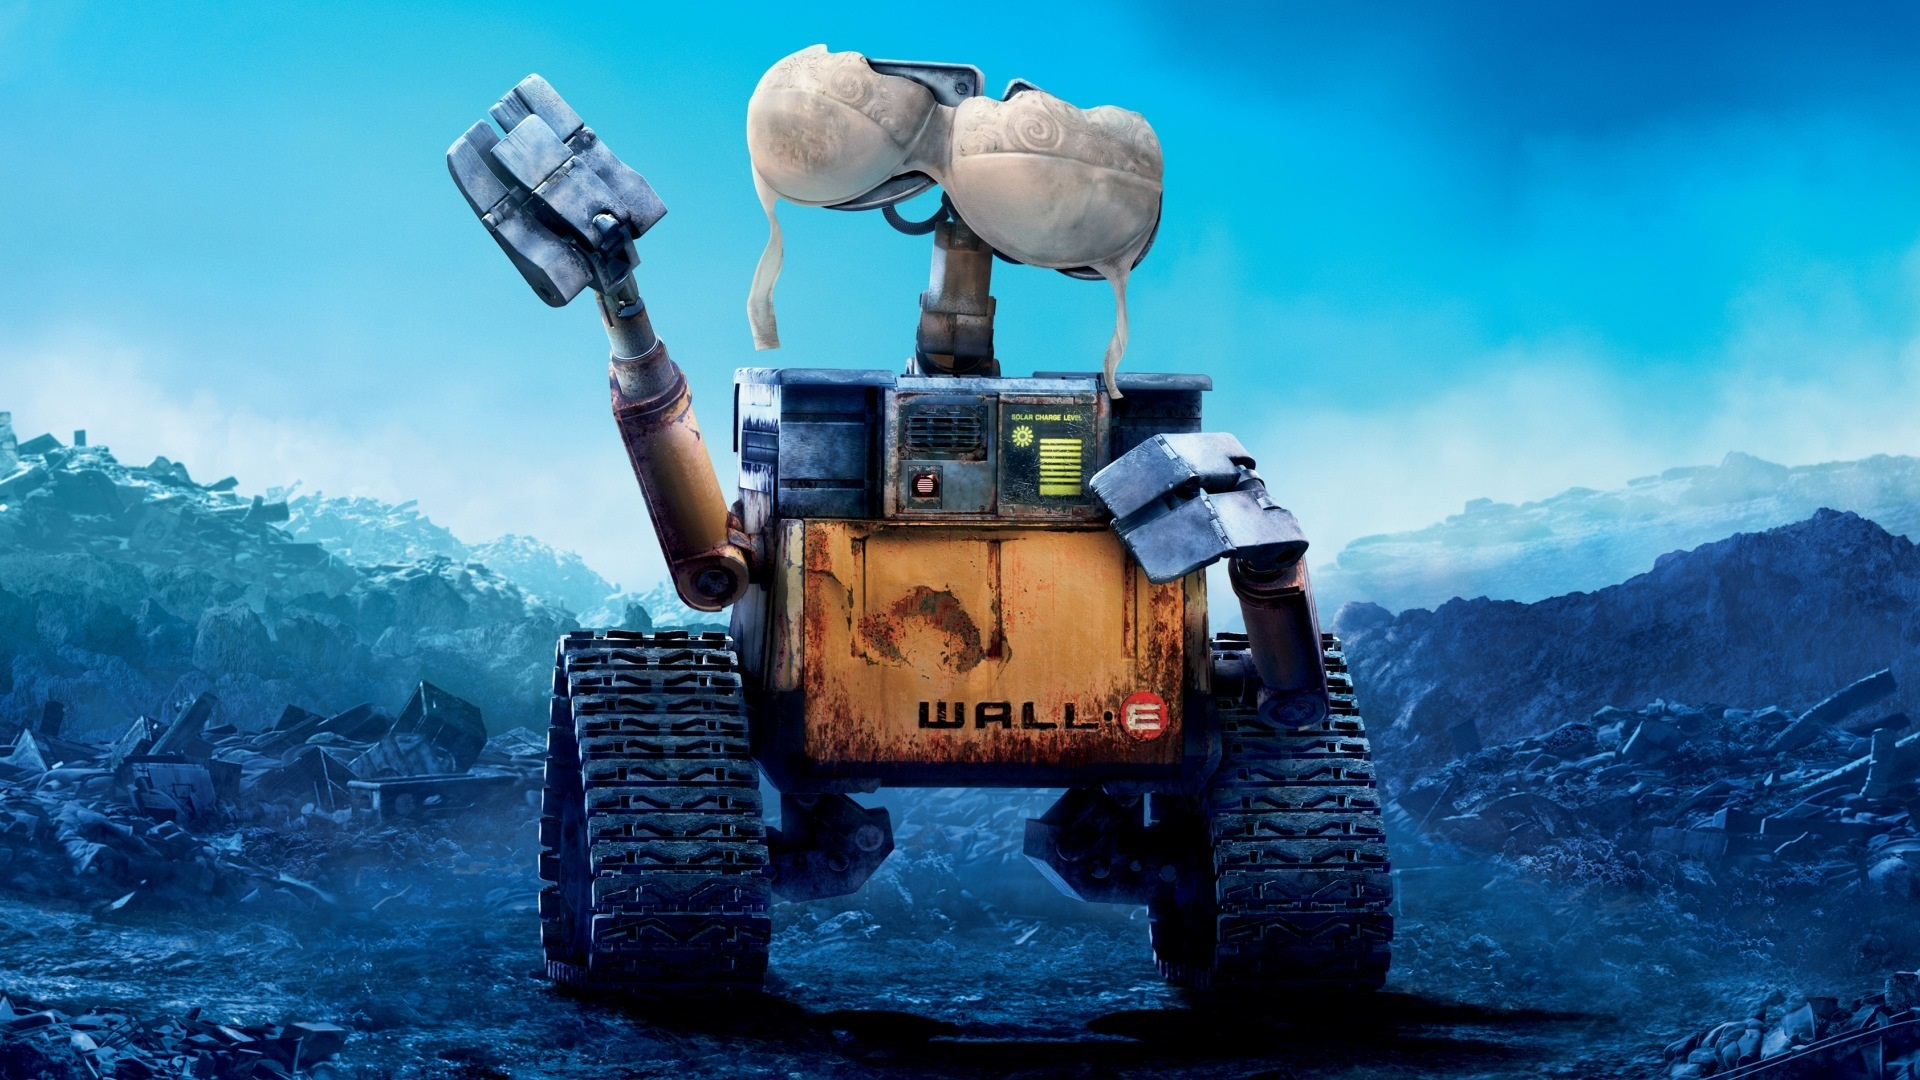 wall-e download full movie